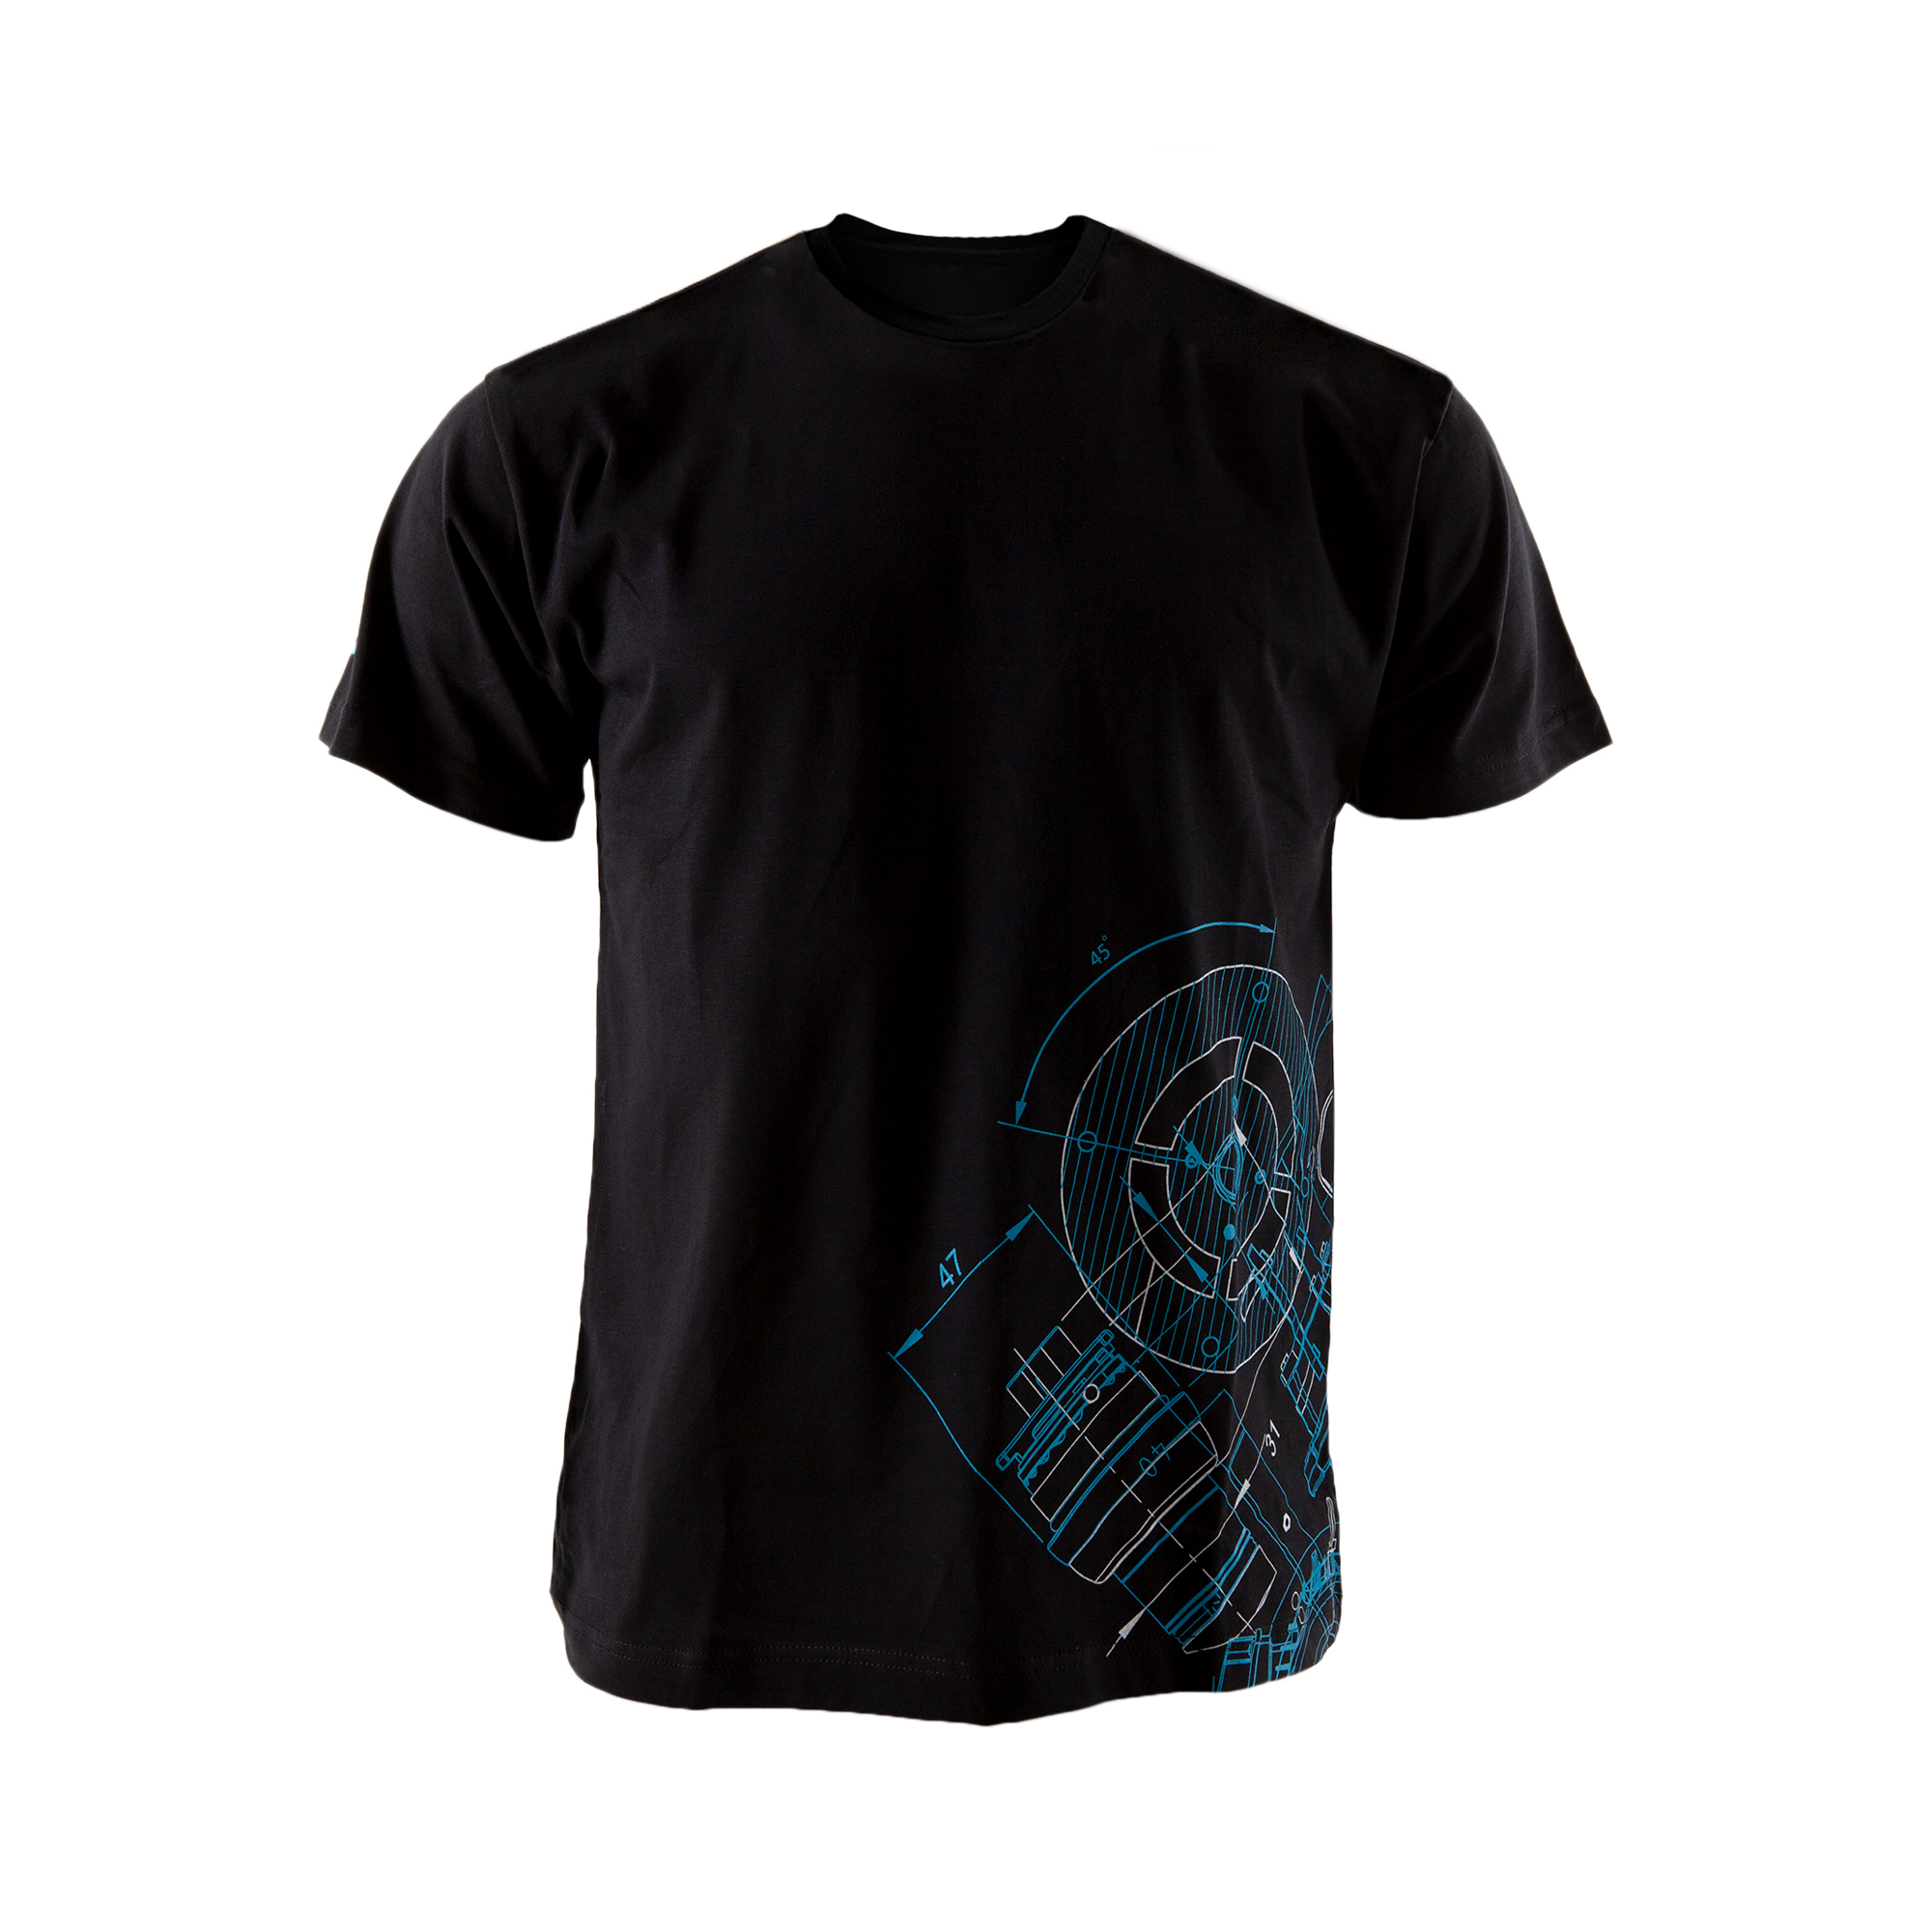 This tee tells a story of innovations. The BluePrint pattern is based on Atlas Copco´s key innovations.